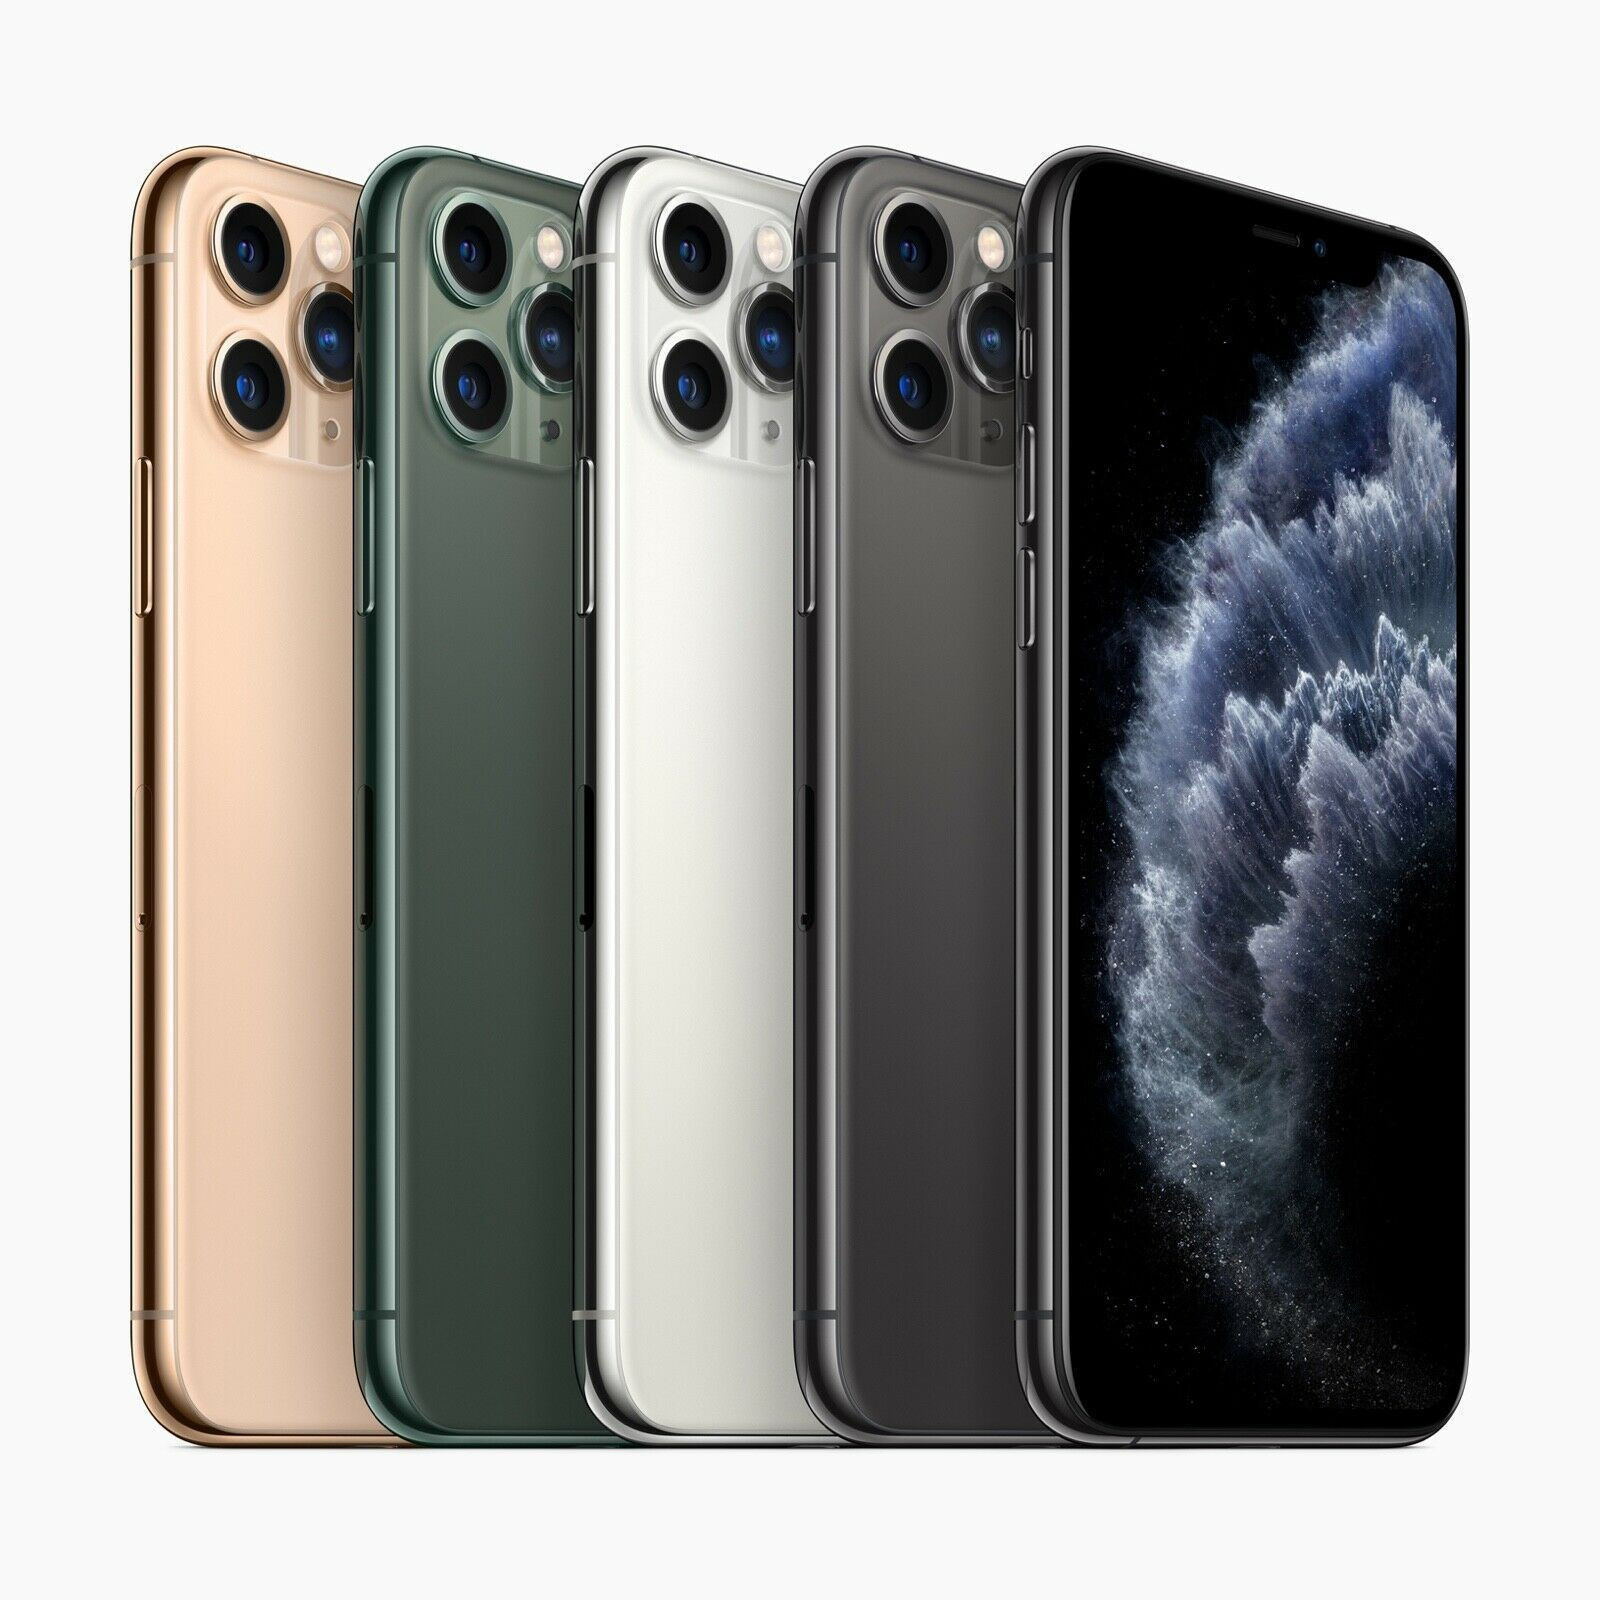 Apple iPhone 11 Pro Max All Colors